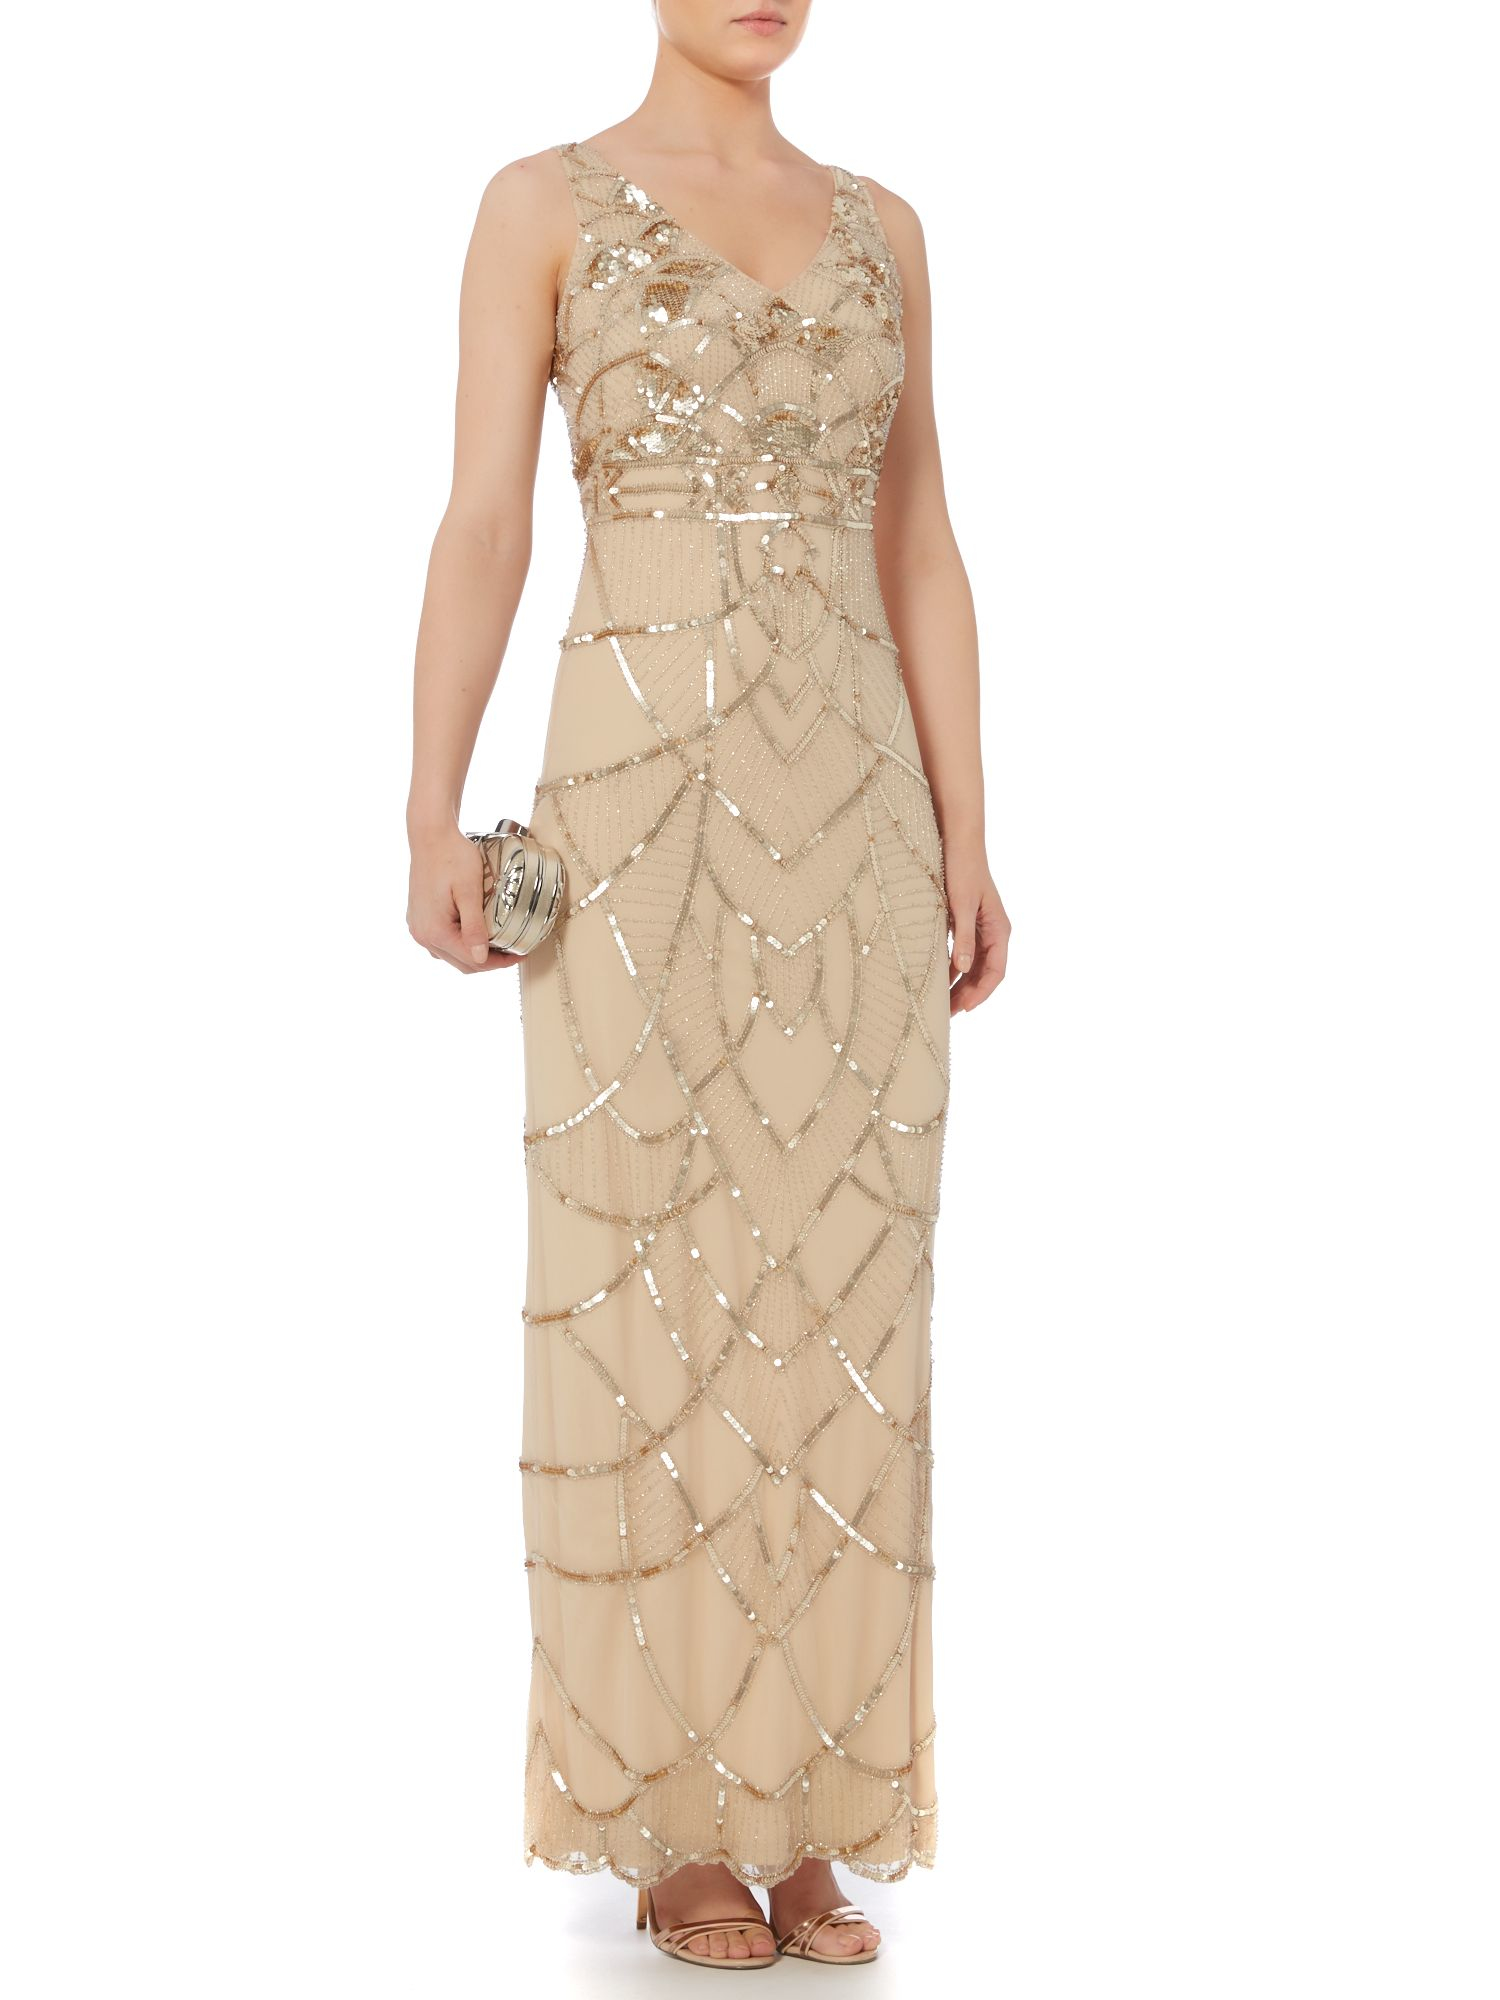 Biba Art Deco Inspired Fully Beaded Maxi Dress in Natural  Lyst